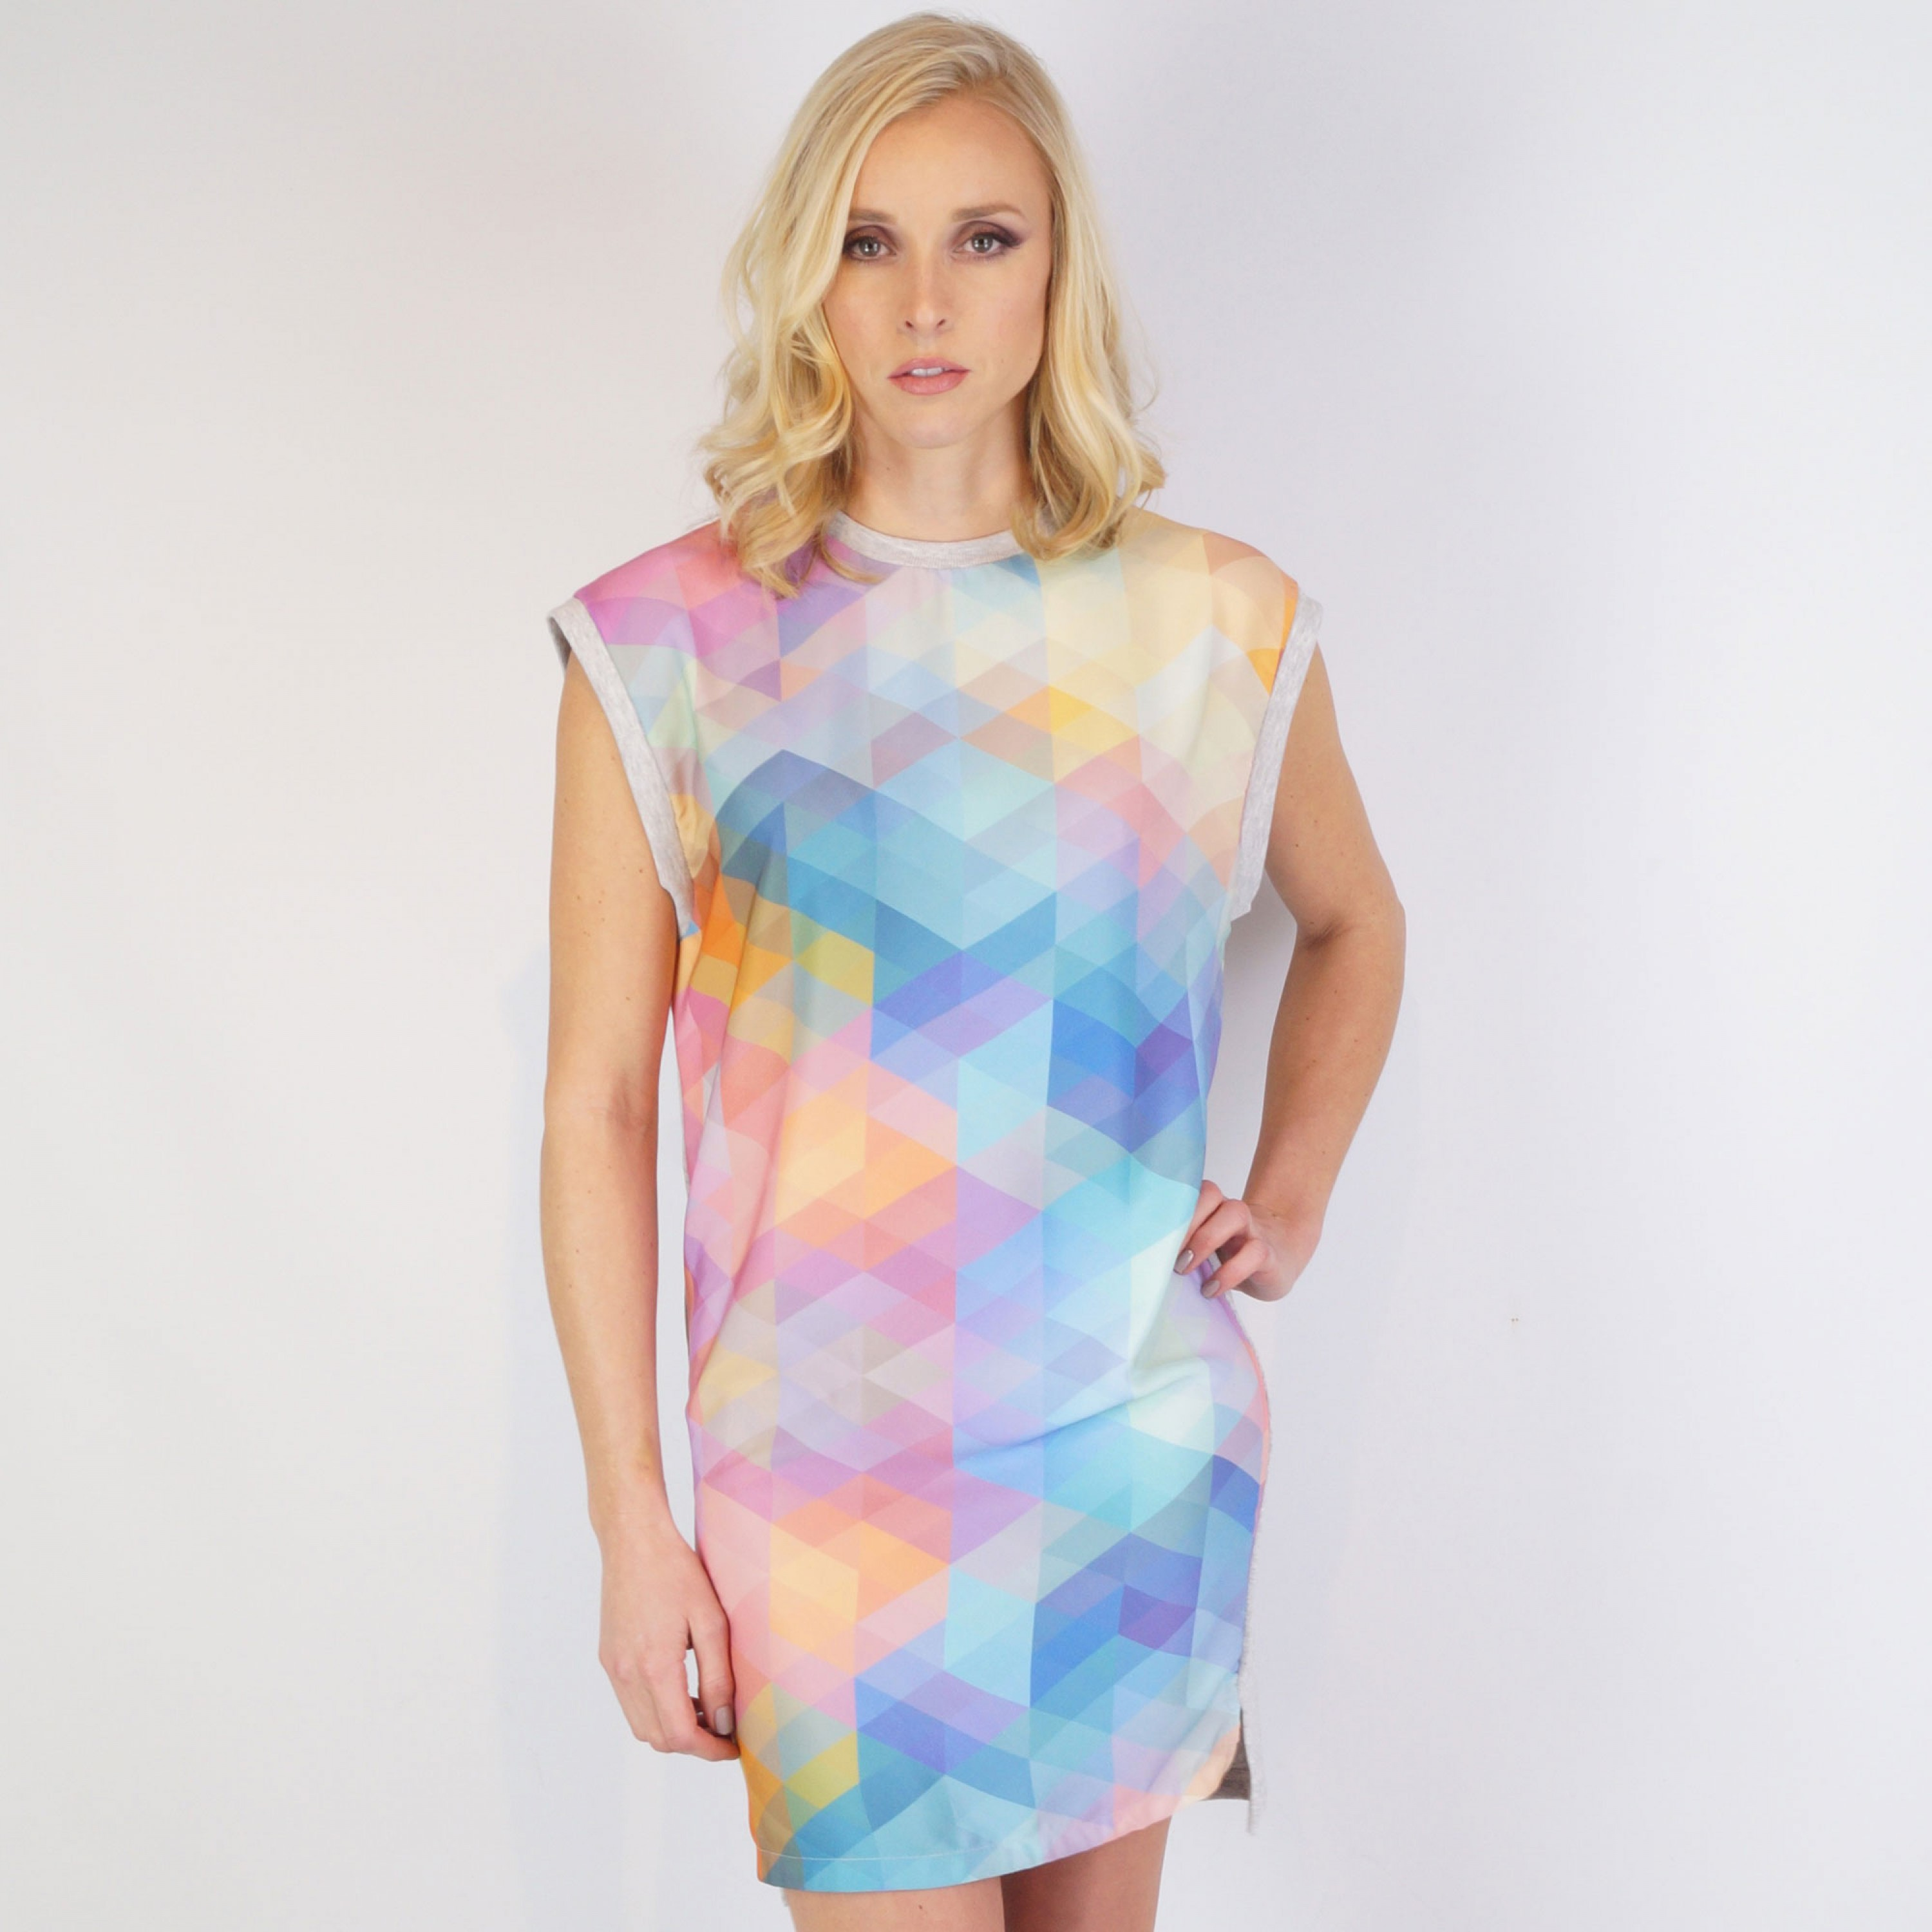 Cuben Miami Dress